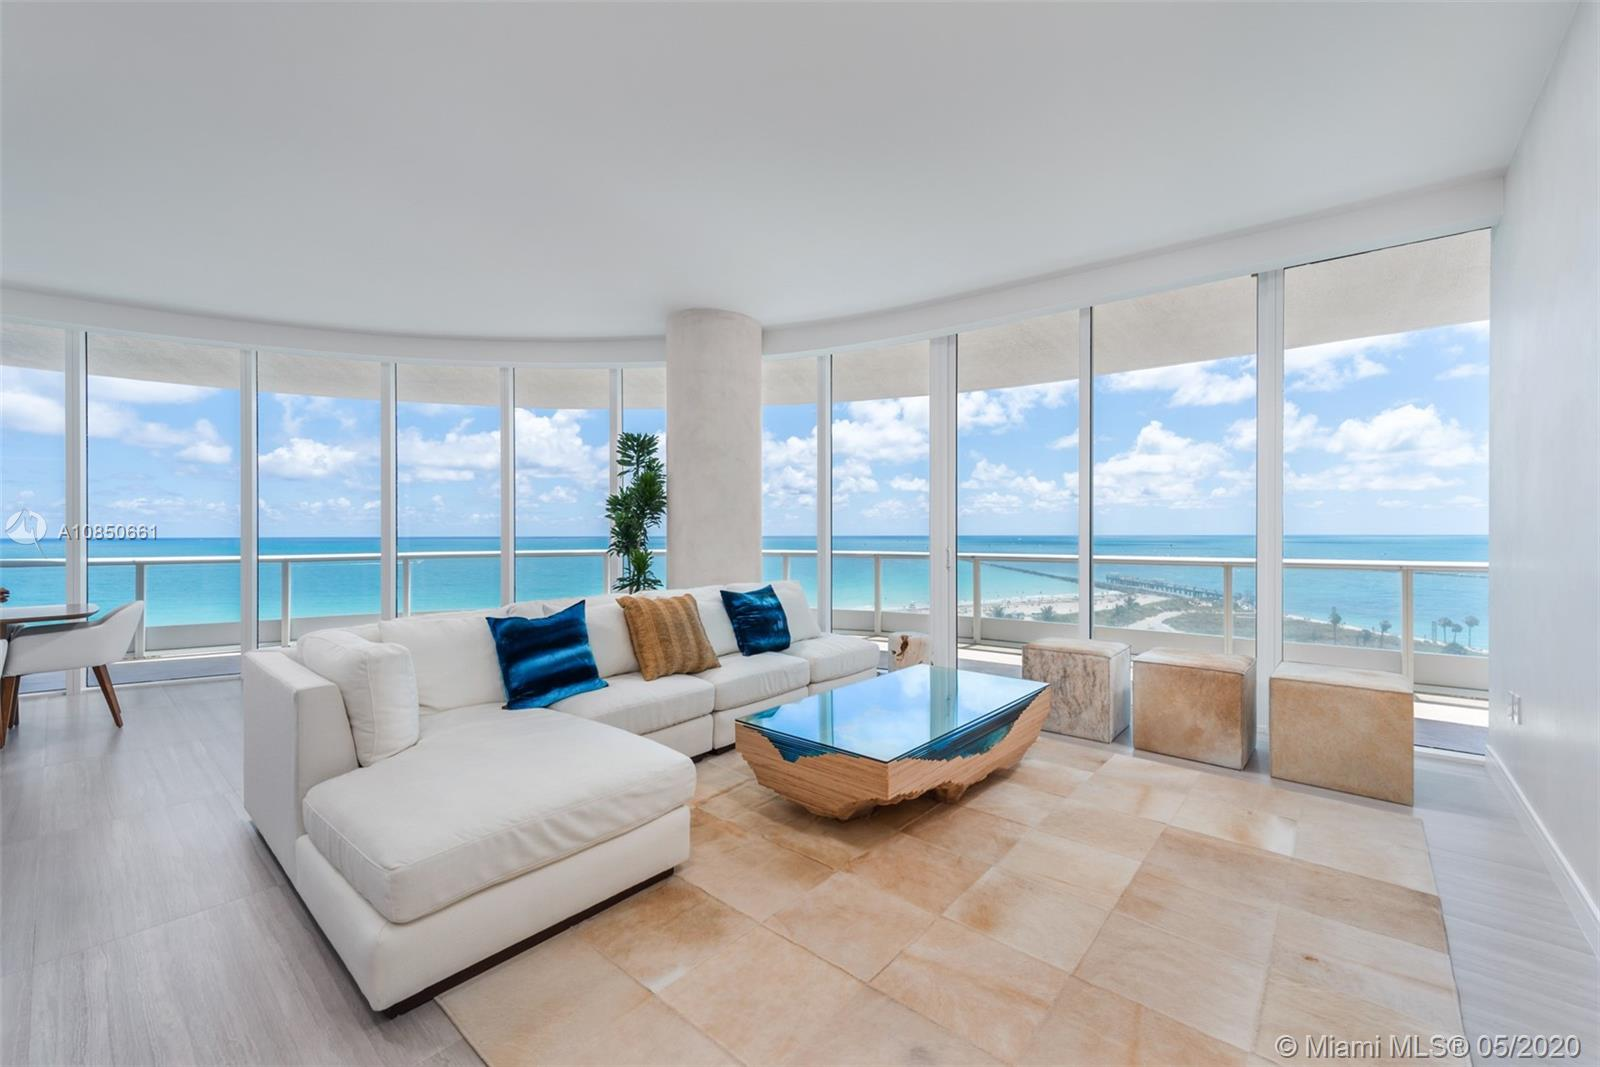 100 S Pointe Dr, Unit #1006 Luxury Real Estate